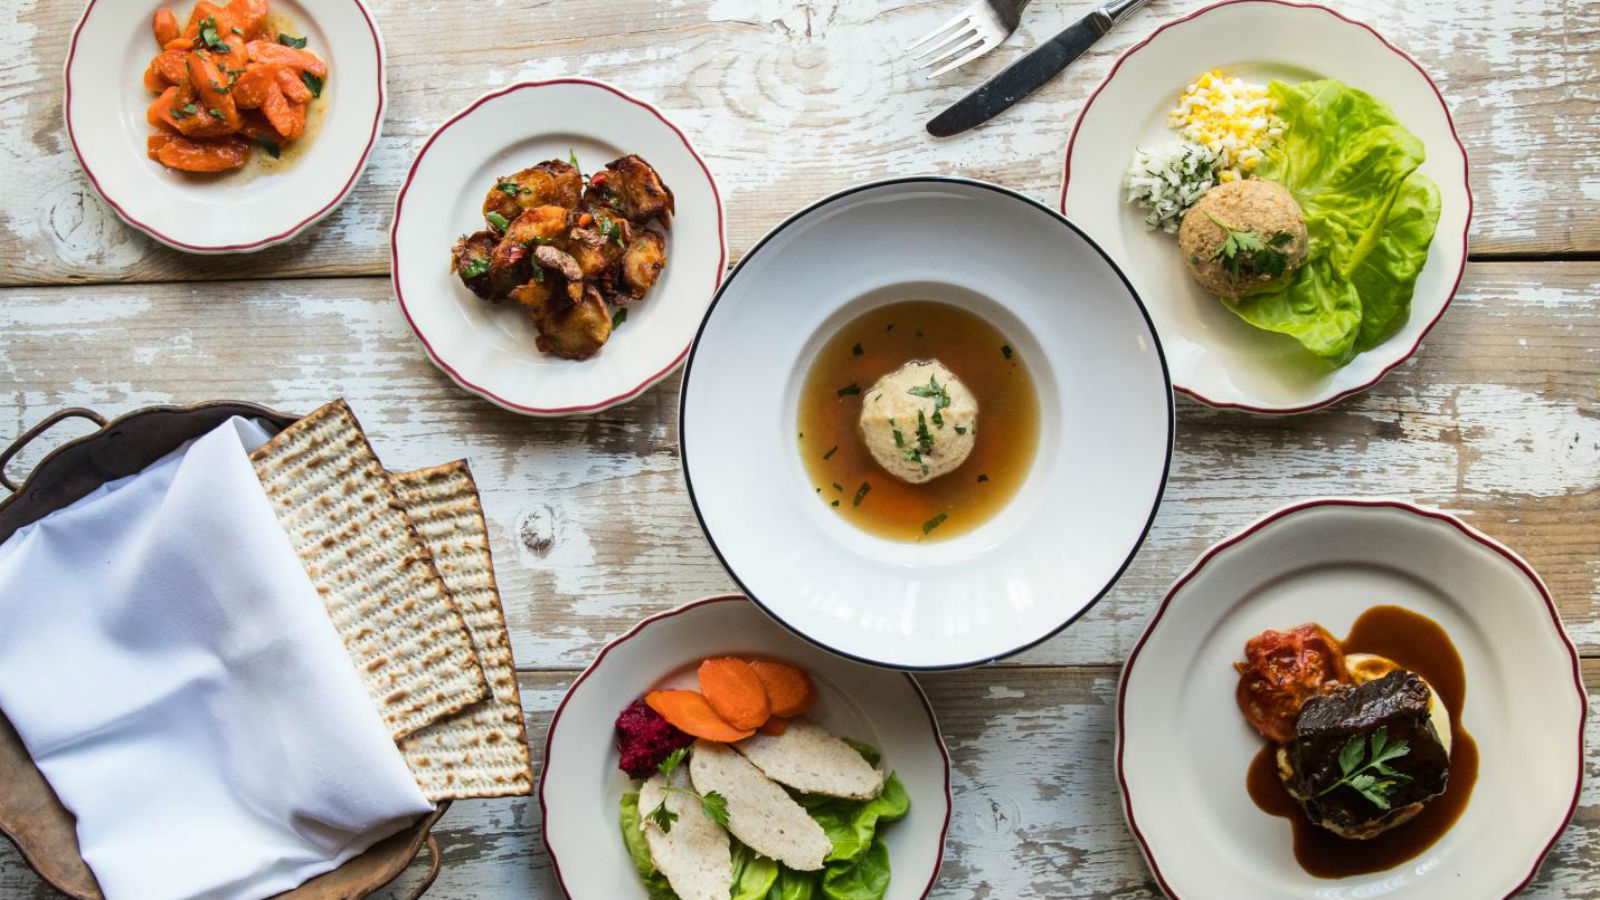 21 Restaurants Hosting Passover Seders Across the Country